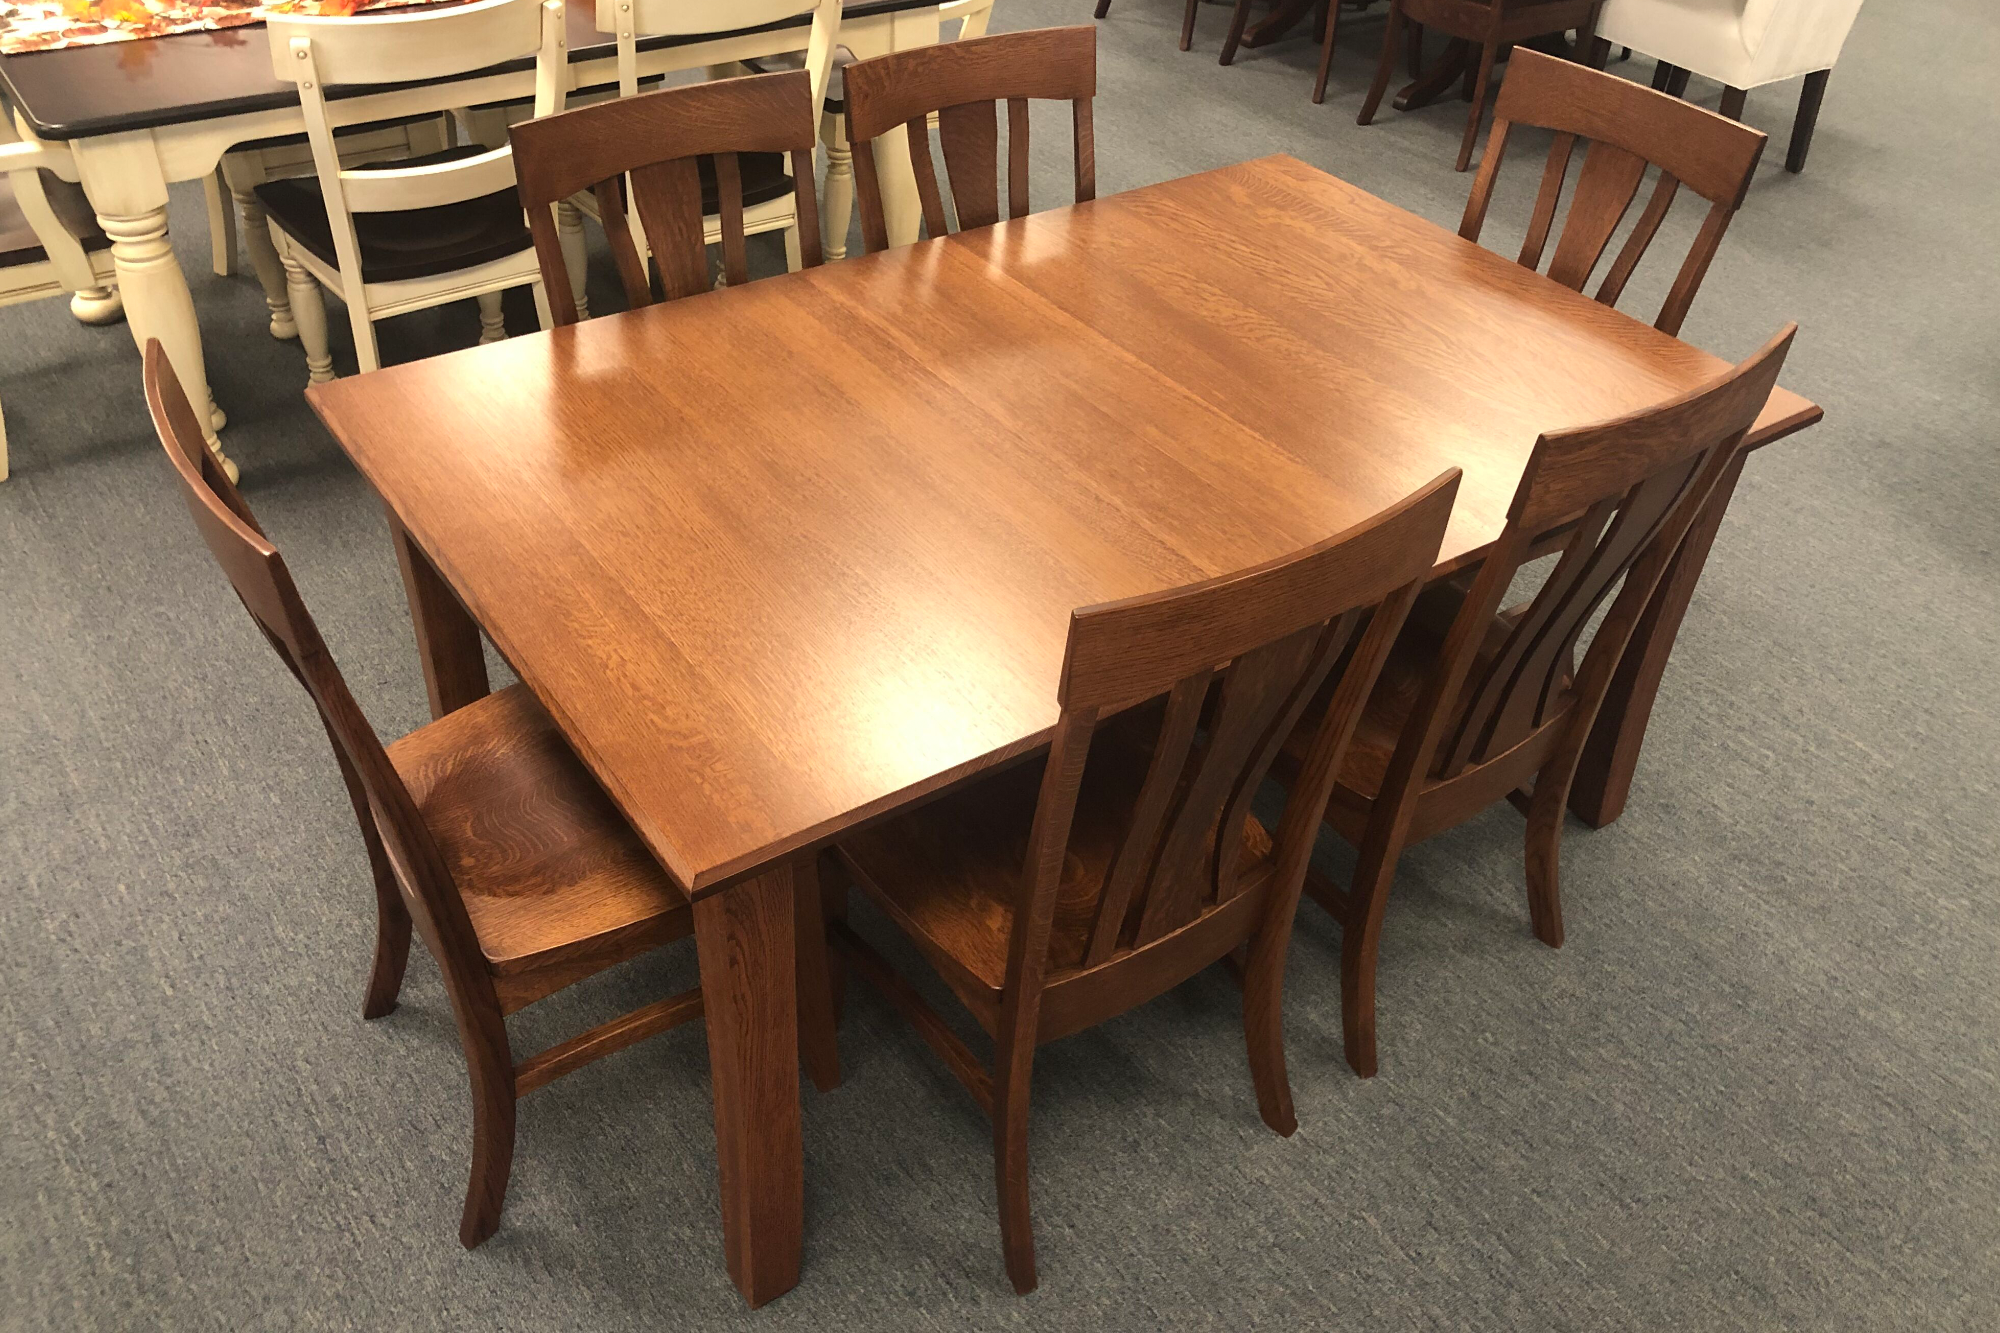 3in OW Shaker Leg Table - QSWO